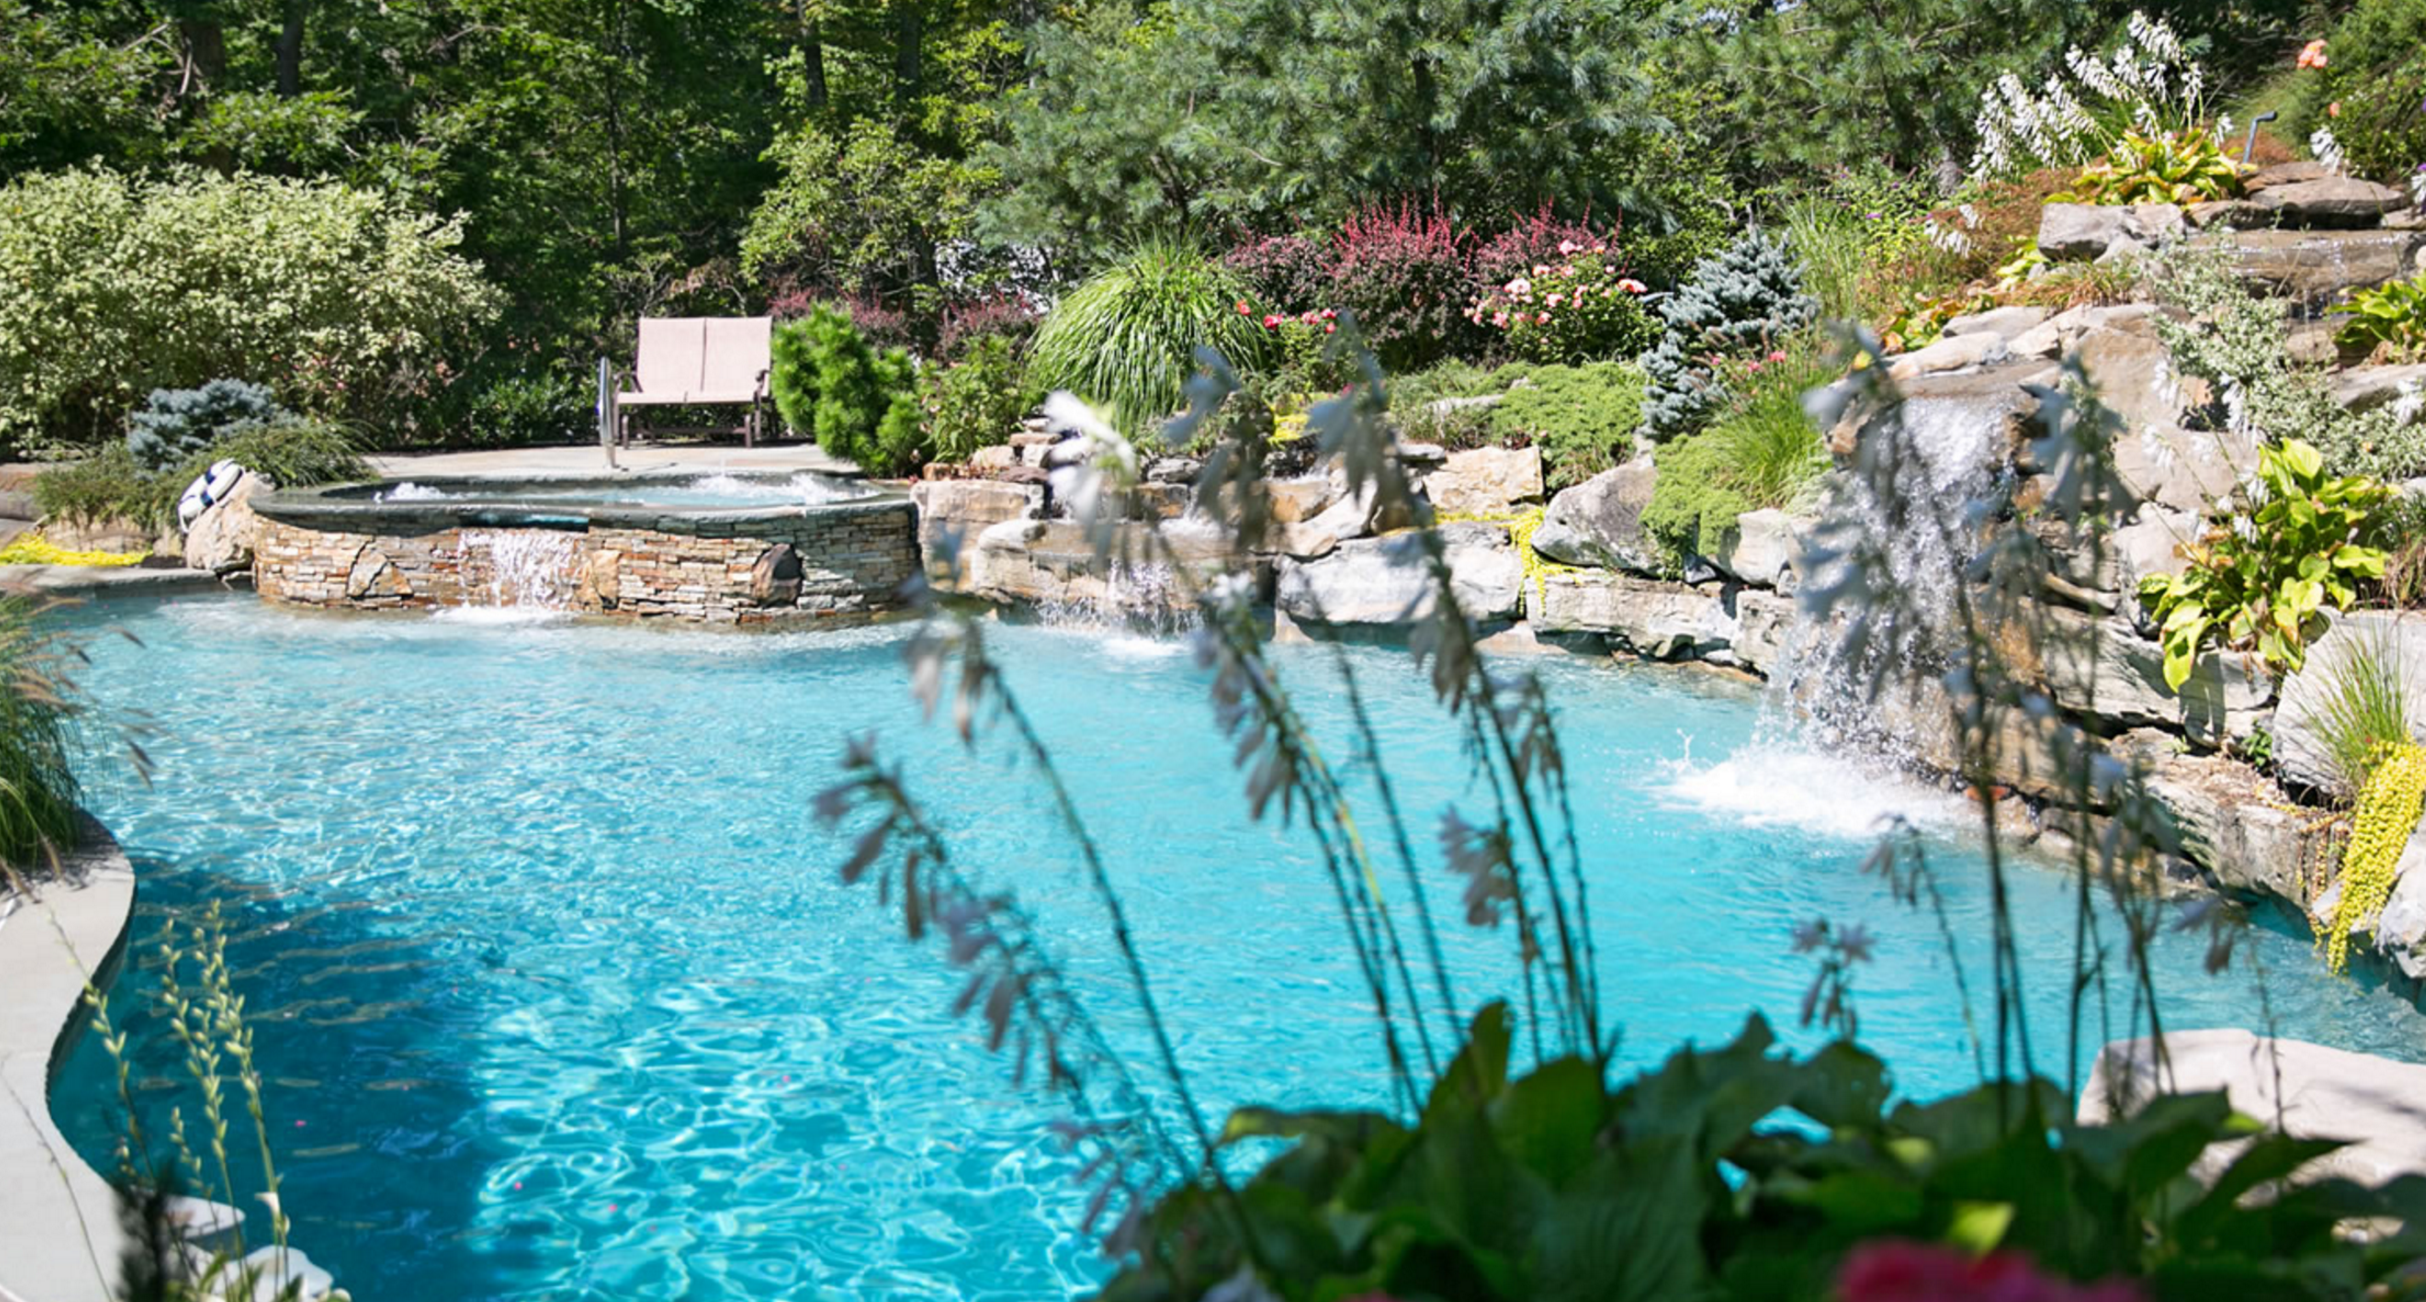 This freeform gunite swimming pool features a built-in spa, waterfall, and lush plantings. Designed and installed by Platinum Site Development in Long Island, NY.